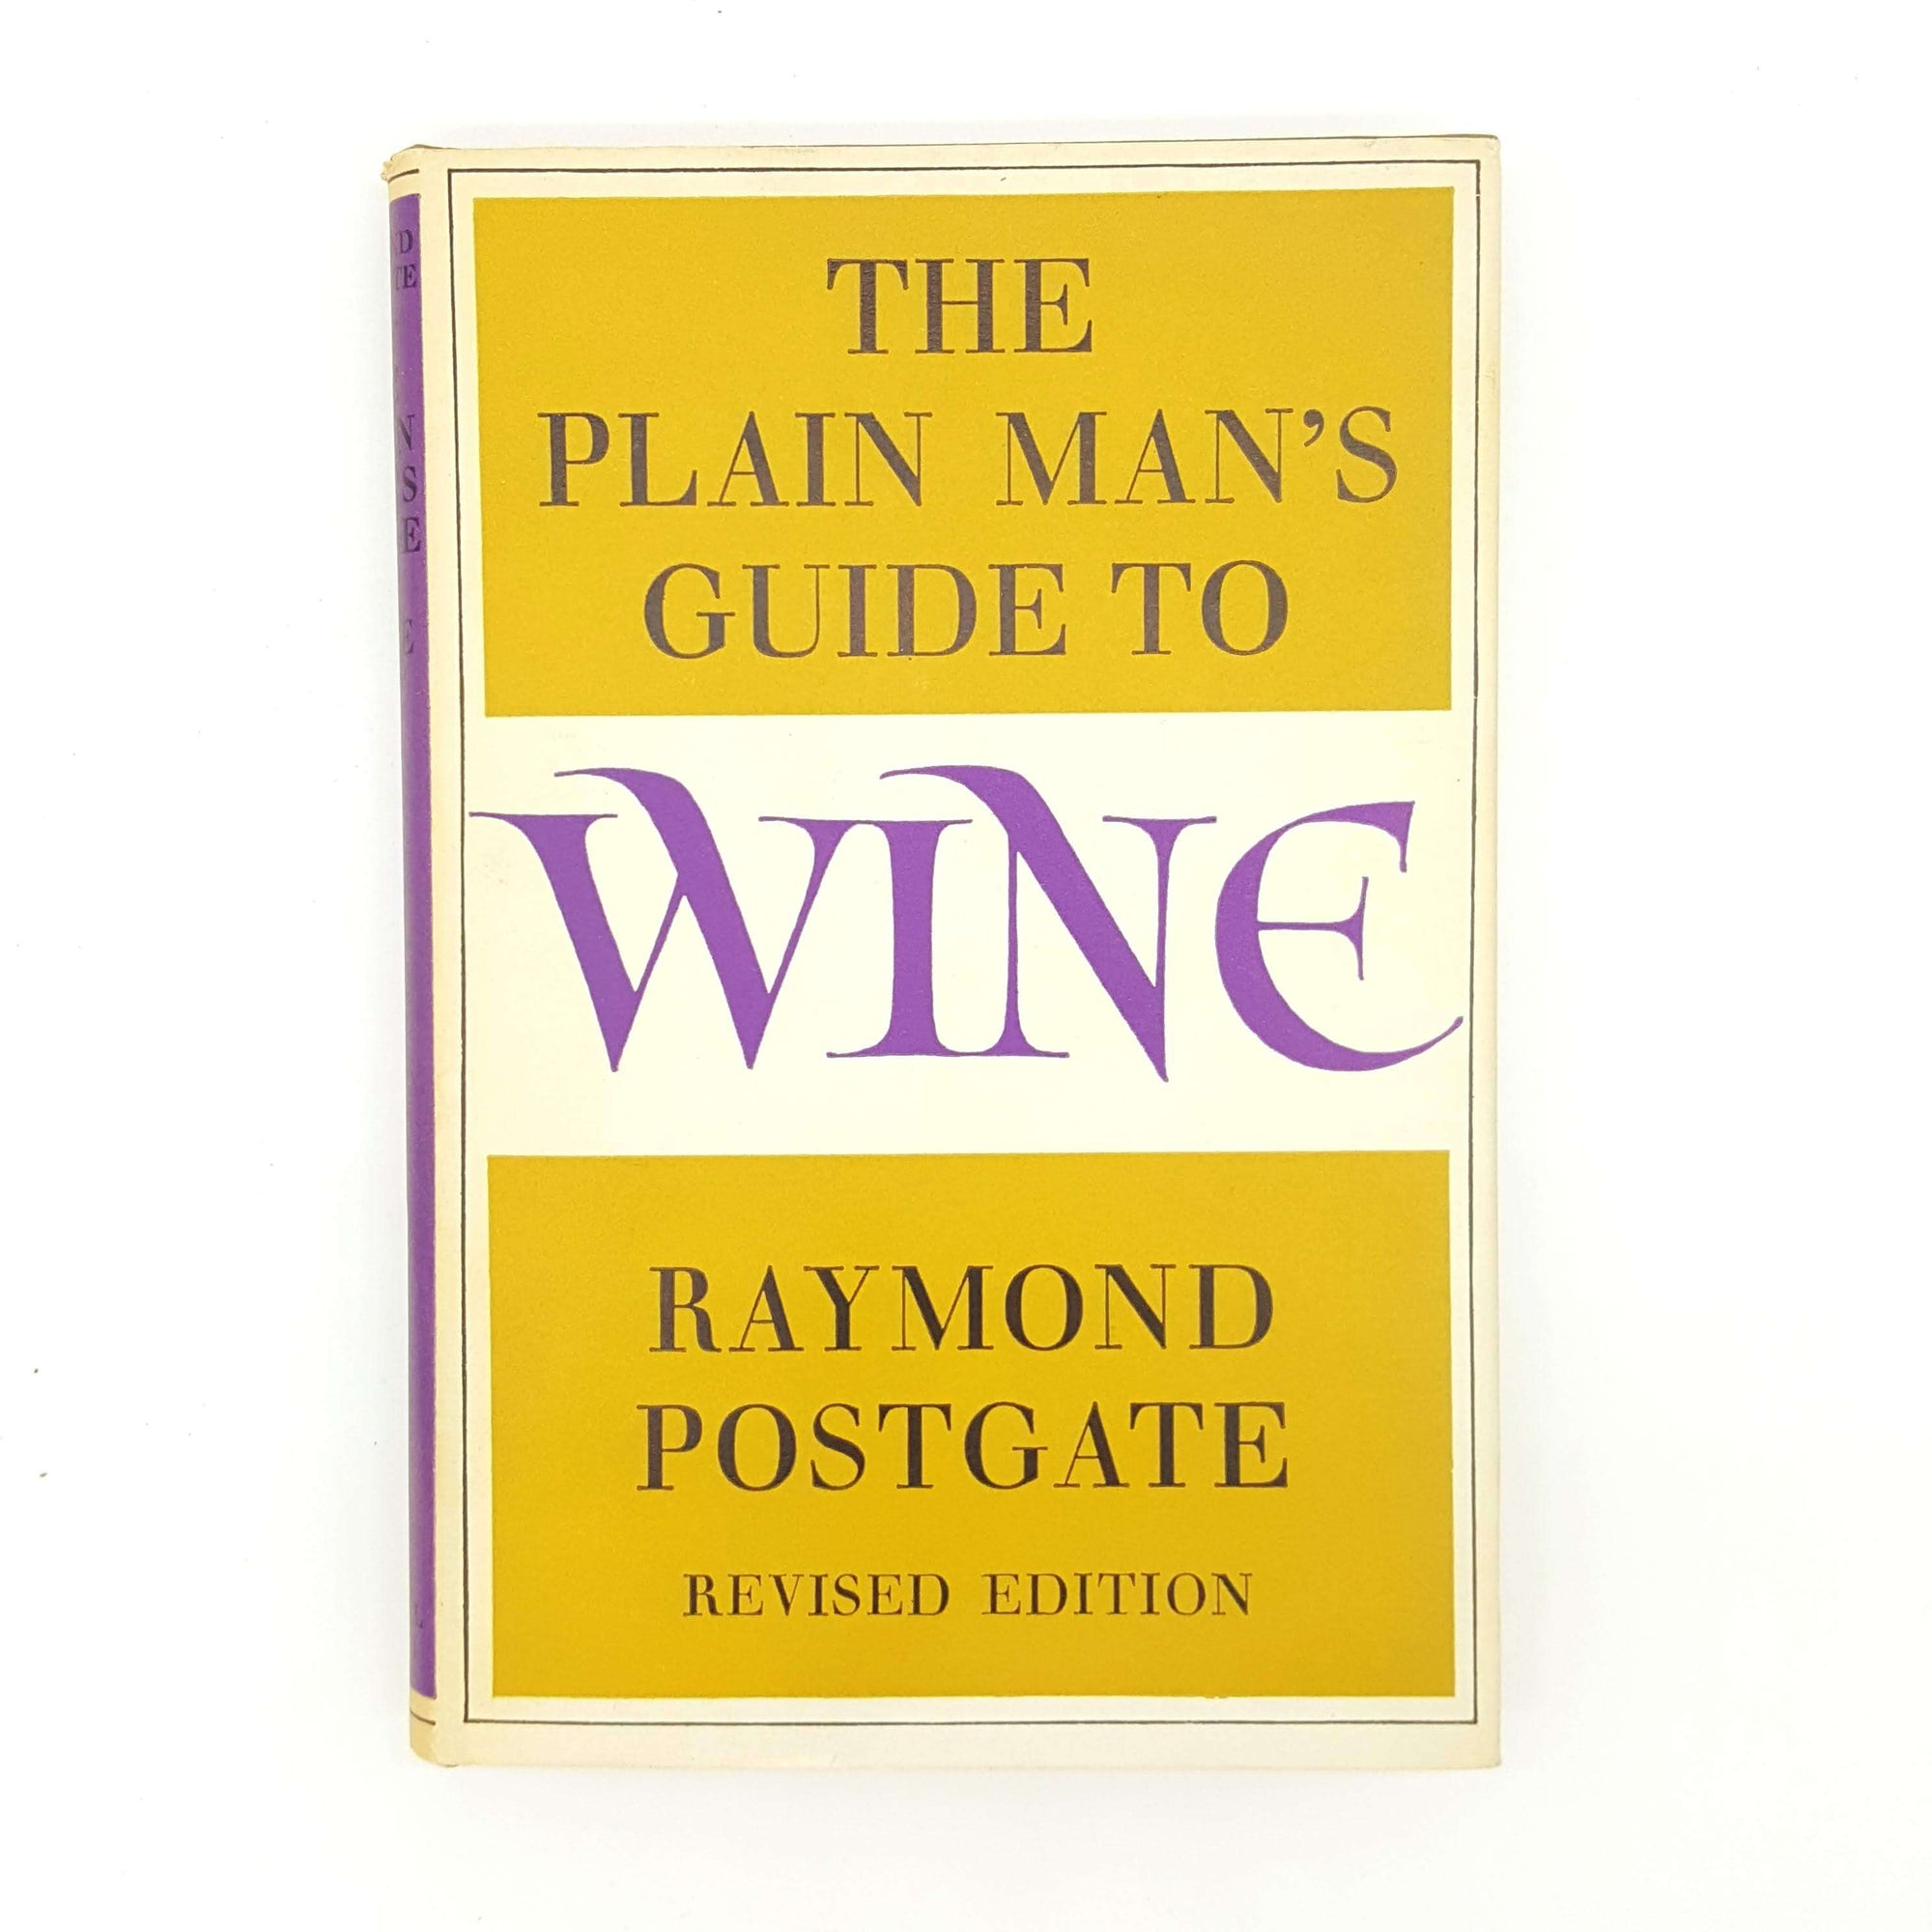 The Plain Man's Guide to Wine by Raymond Postgate 1967 Country House Library